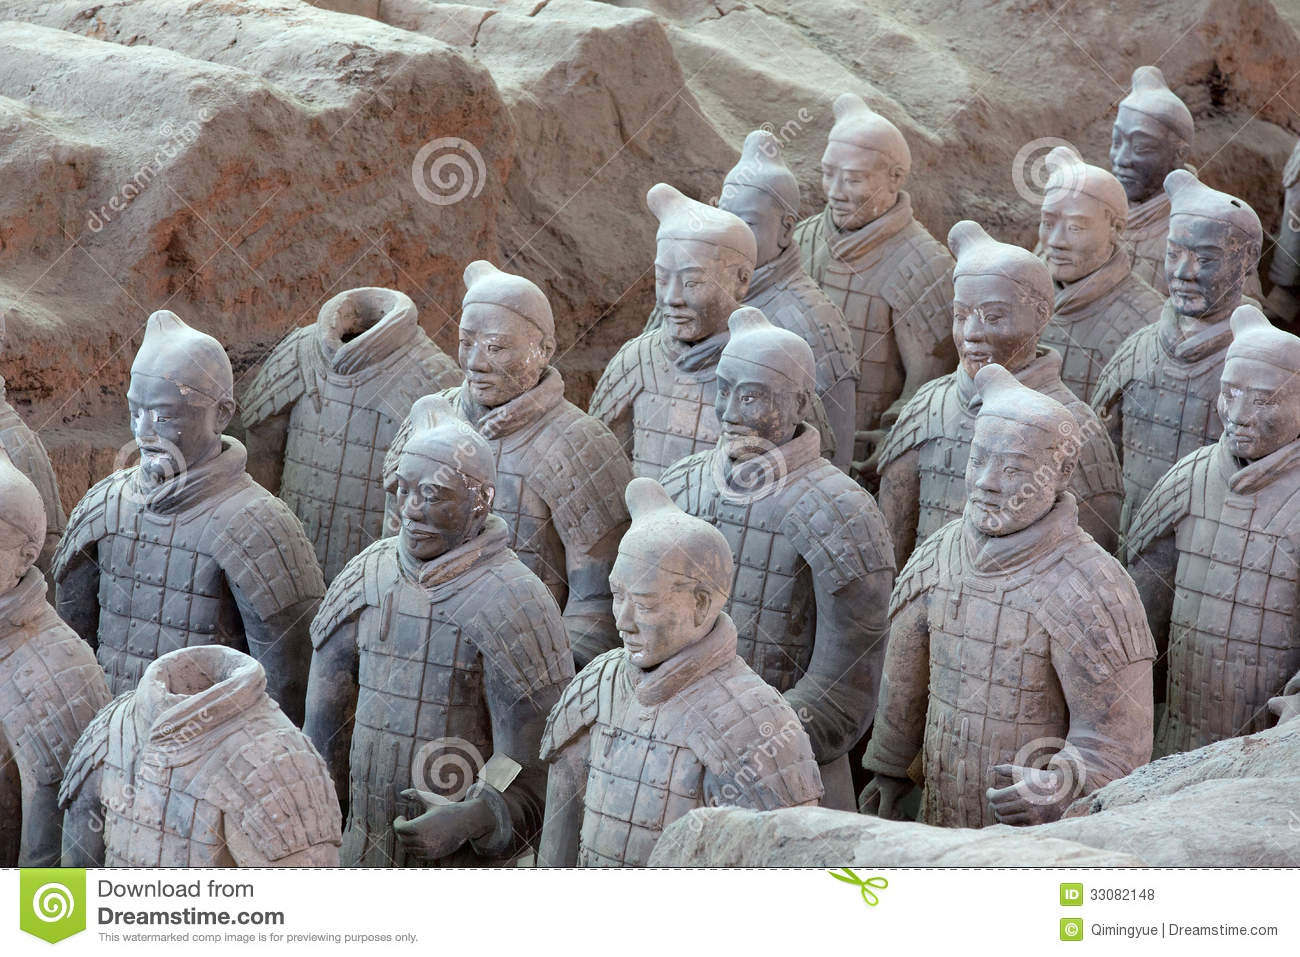 Download Terra-Cotta Warriors stock photo. Image of pottery, grave - 33082148